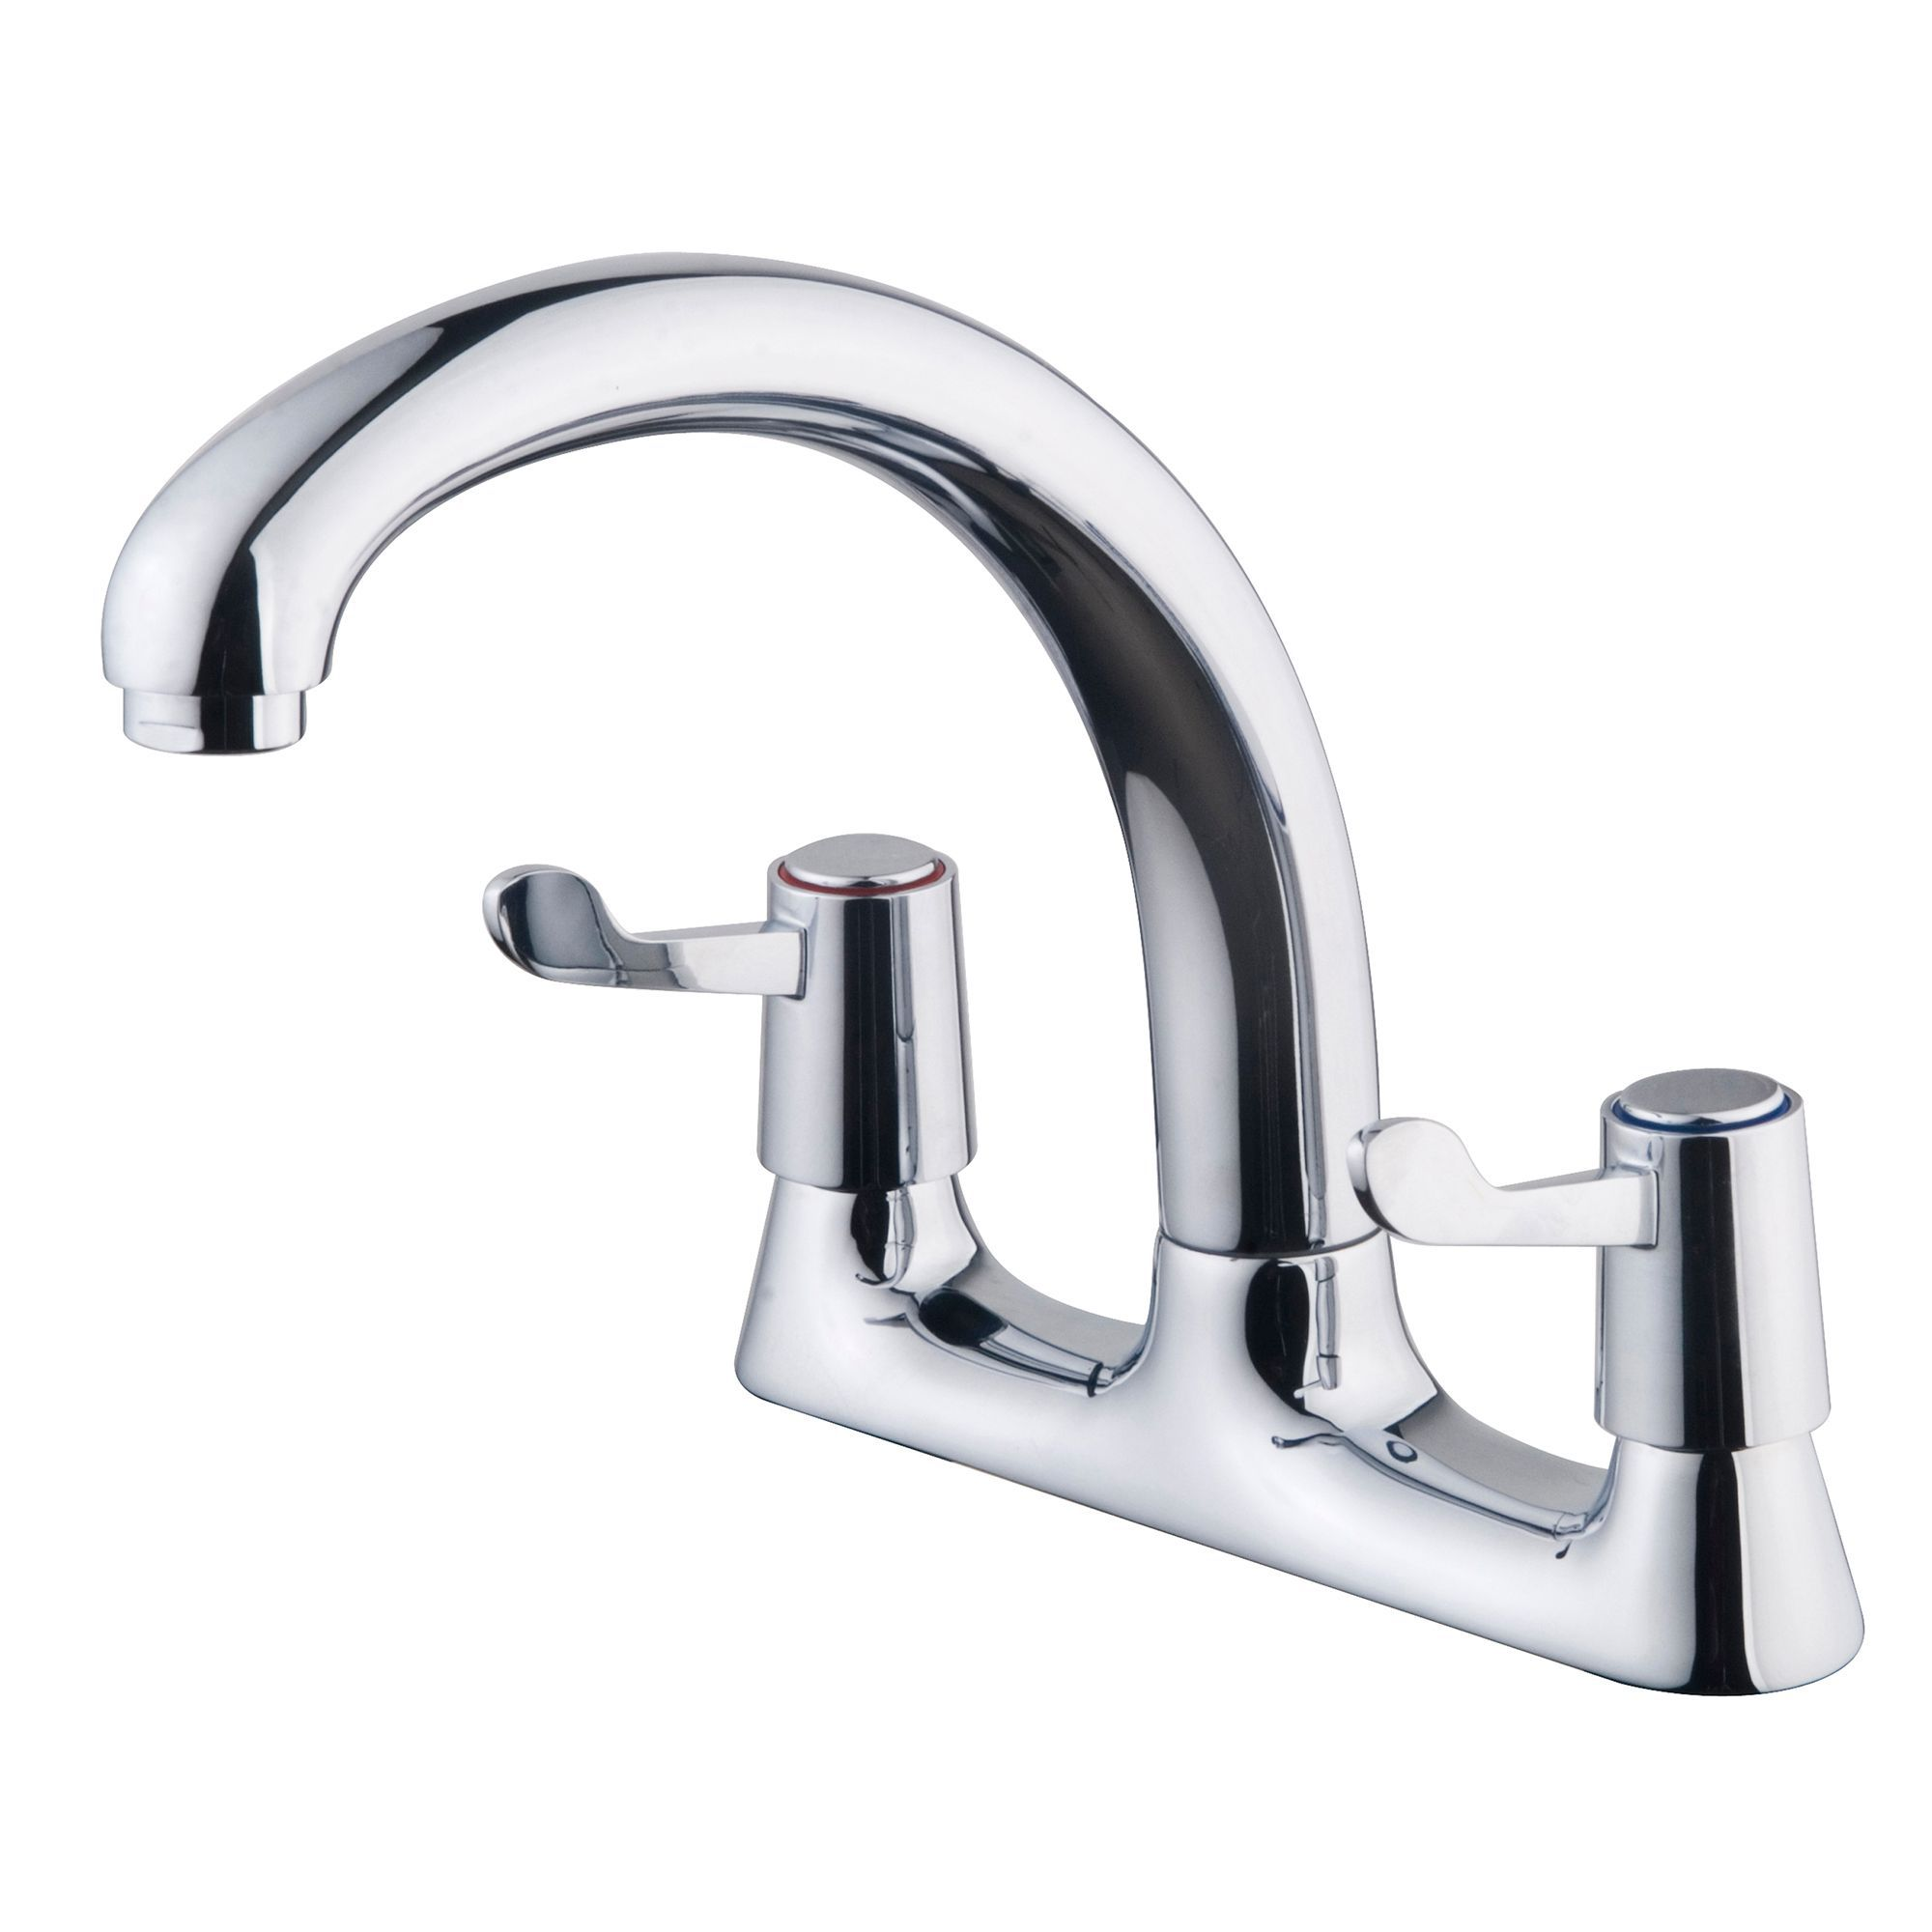 Galleny Chrome Finish Kitchen Deck Mixer Tap | Departments ...